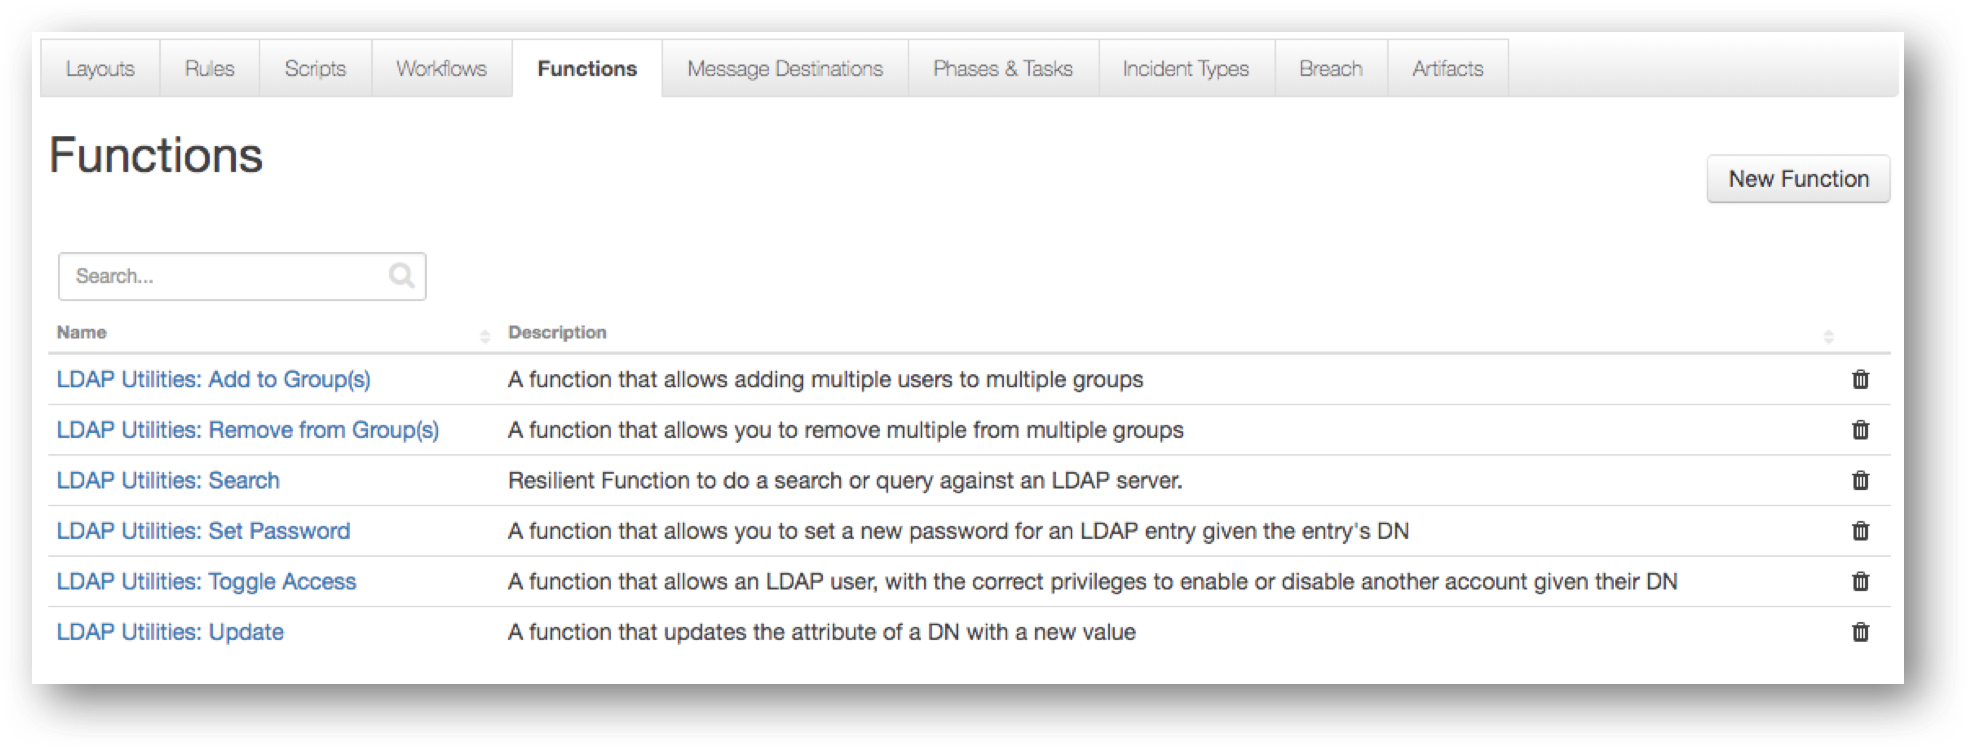 Ibm Security App Exchange Ldap Functions For Resilient Description Of Function